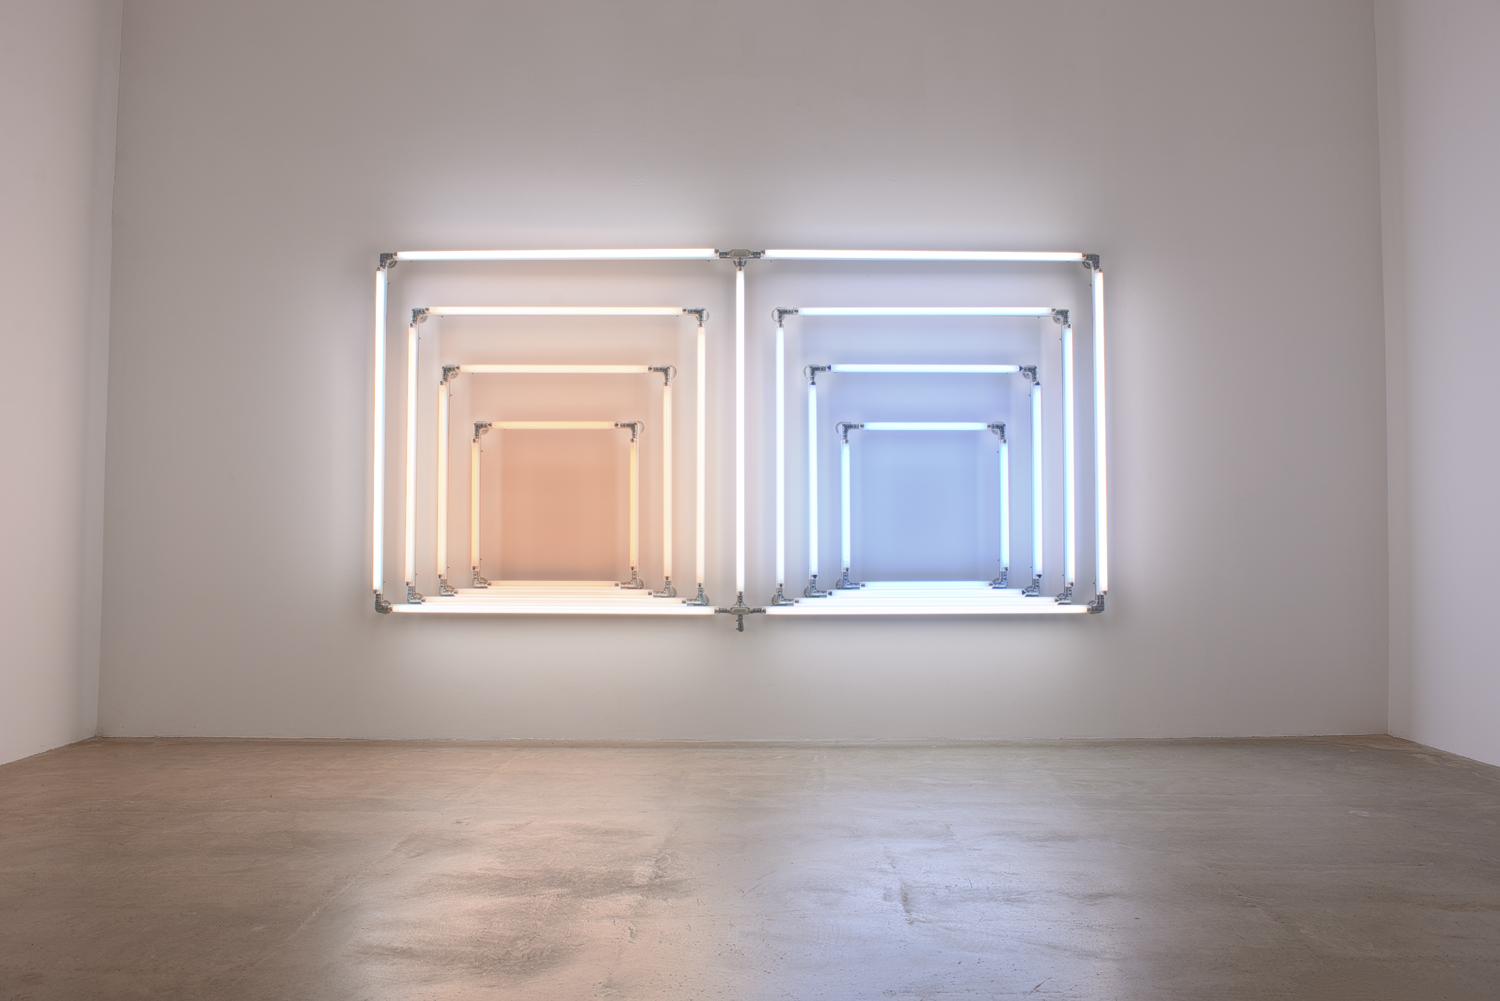 light/DOUBLE_ALBERS: Warm White Deluxe/Warm White/Natural White/Cool White/Sunlight/Daylight/Daylight Deluxe 2013